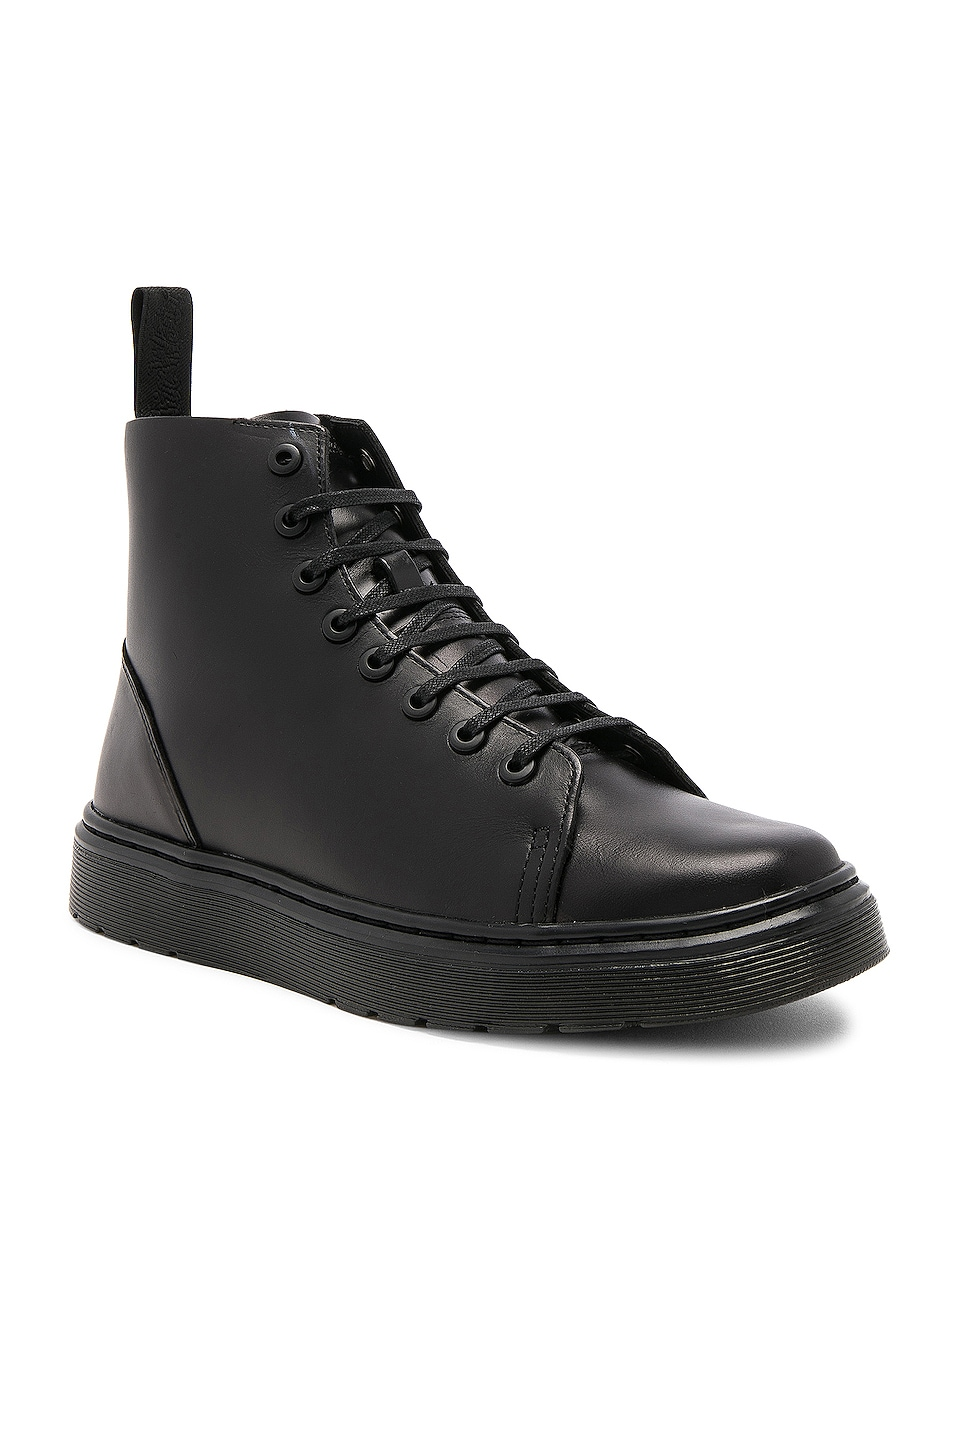 Dr. Martens Talib 8 Eye Leather Boots in Black